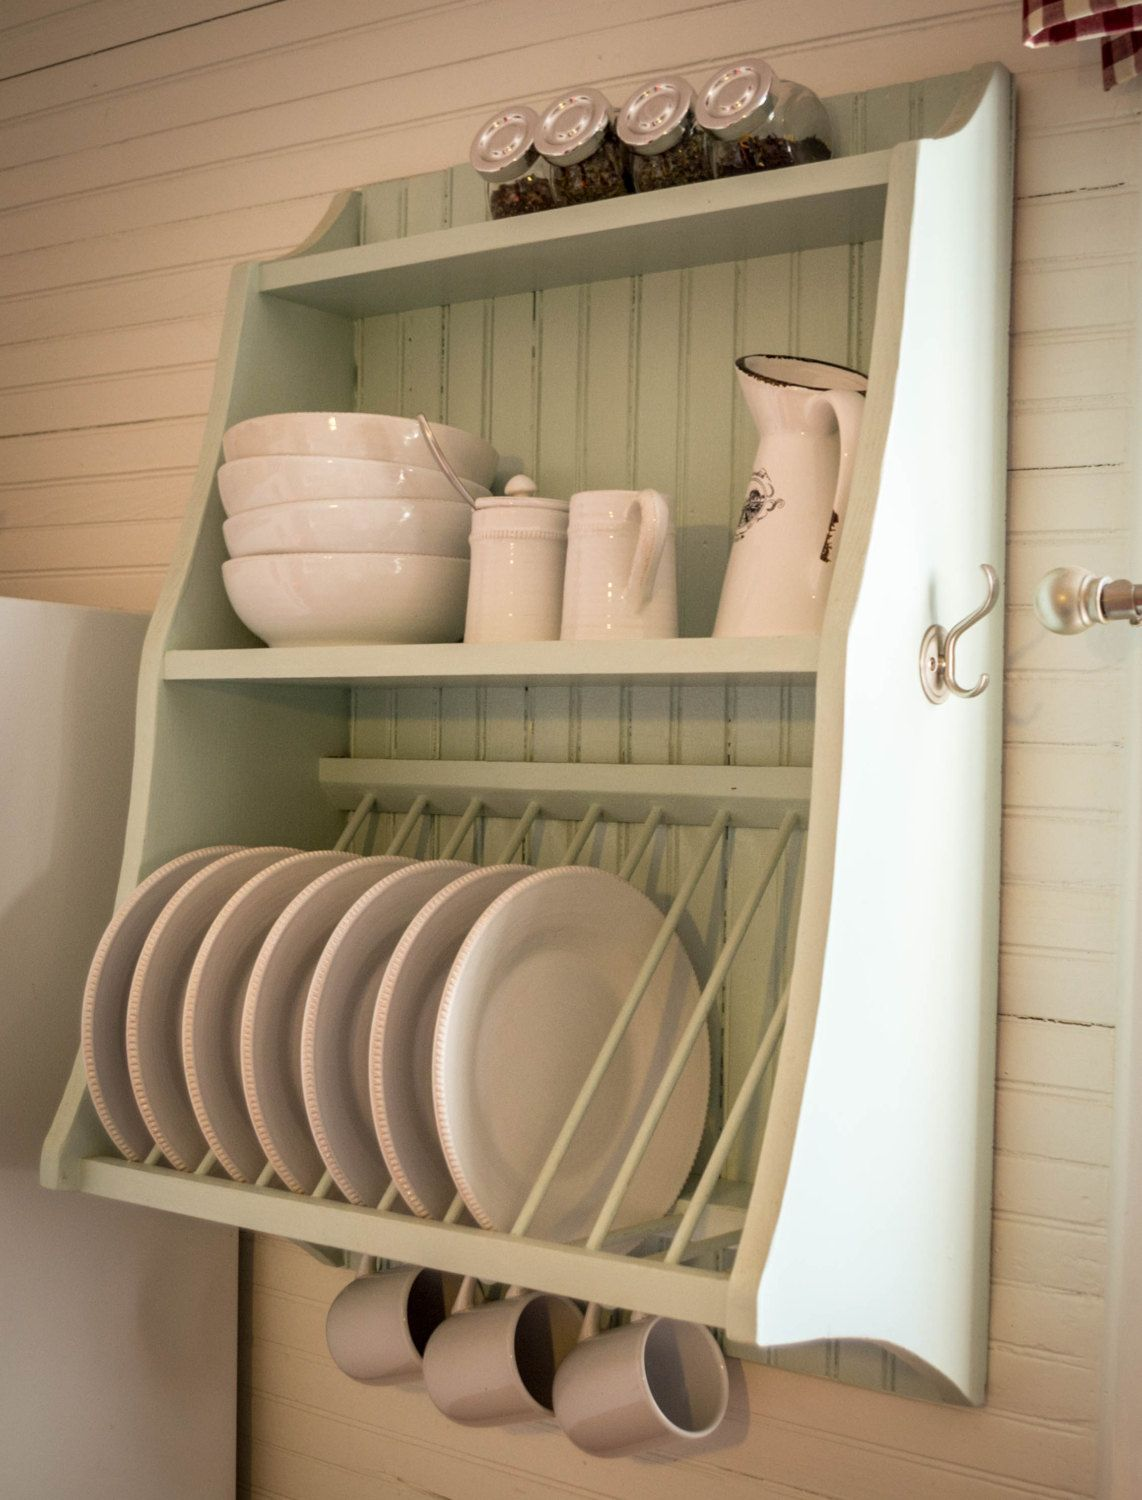 Dish Rack For Kitchen Cabinet